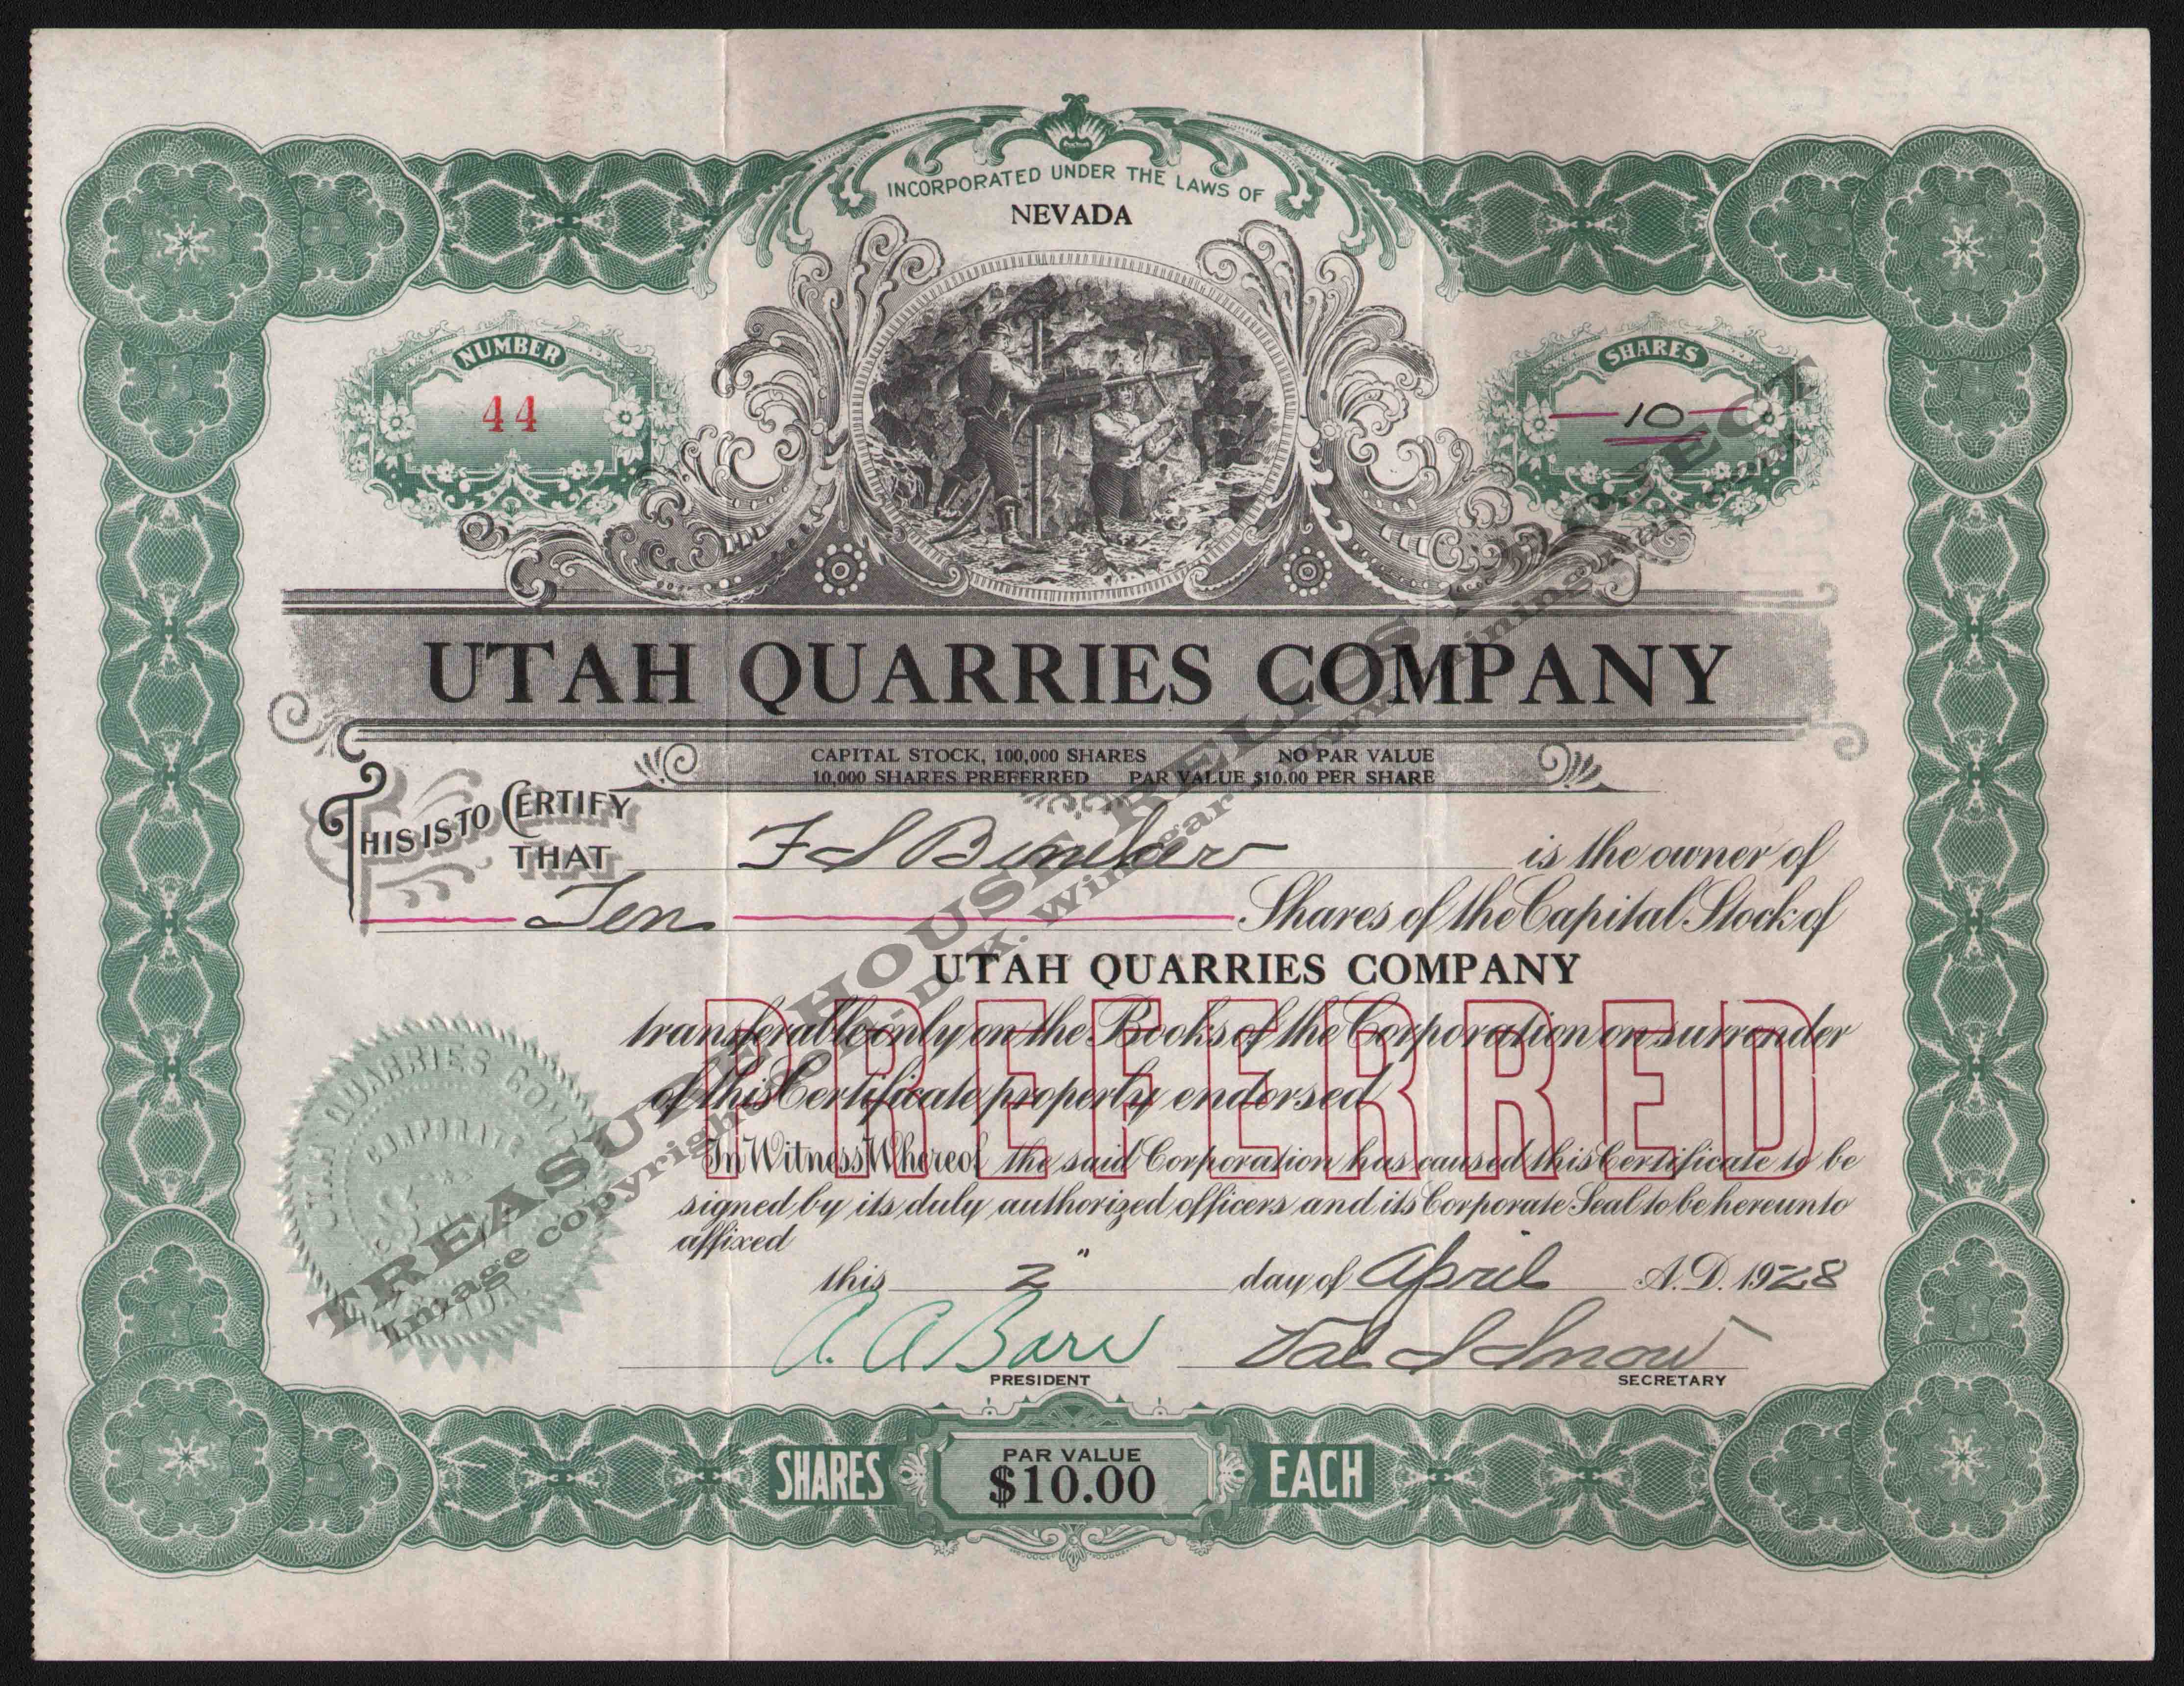 UTAH_QUARRIES_COMPANY_44_400_emboss.jpg